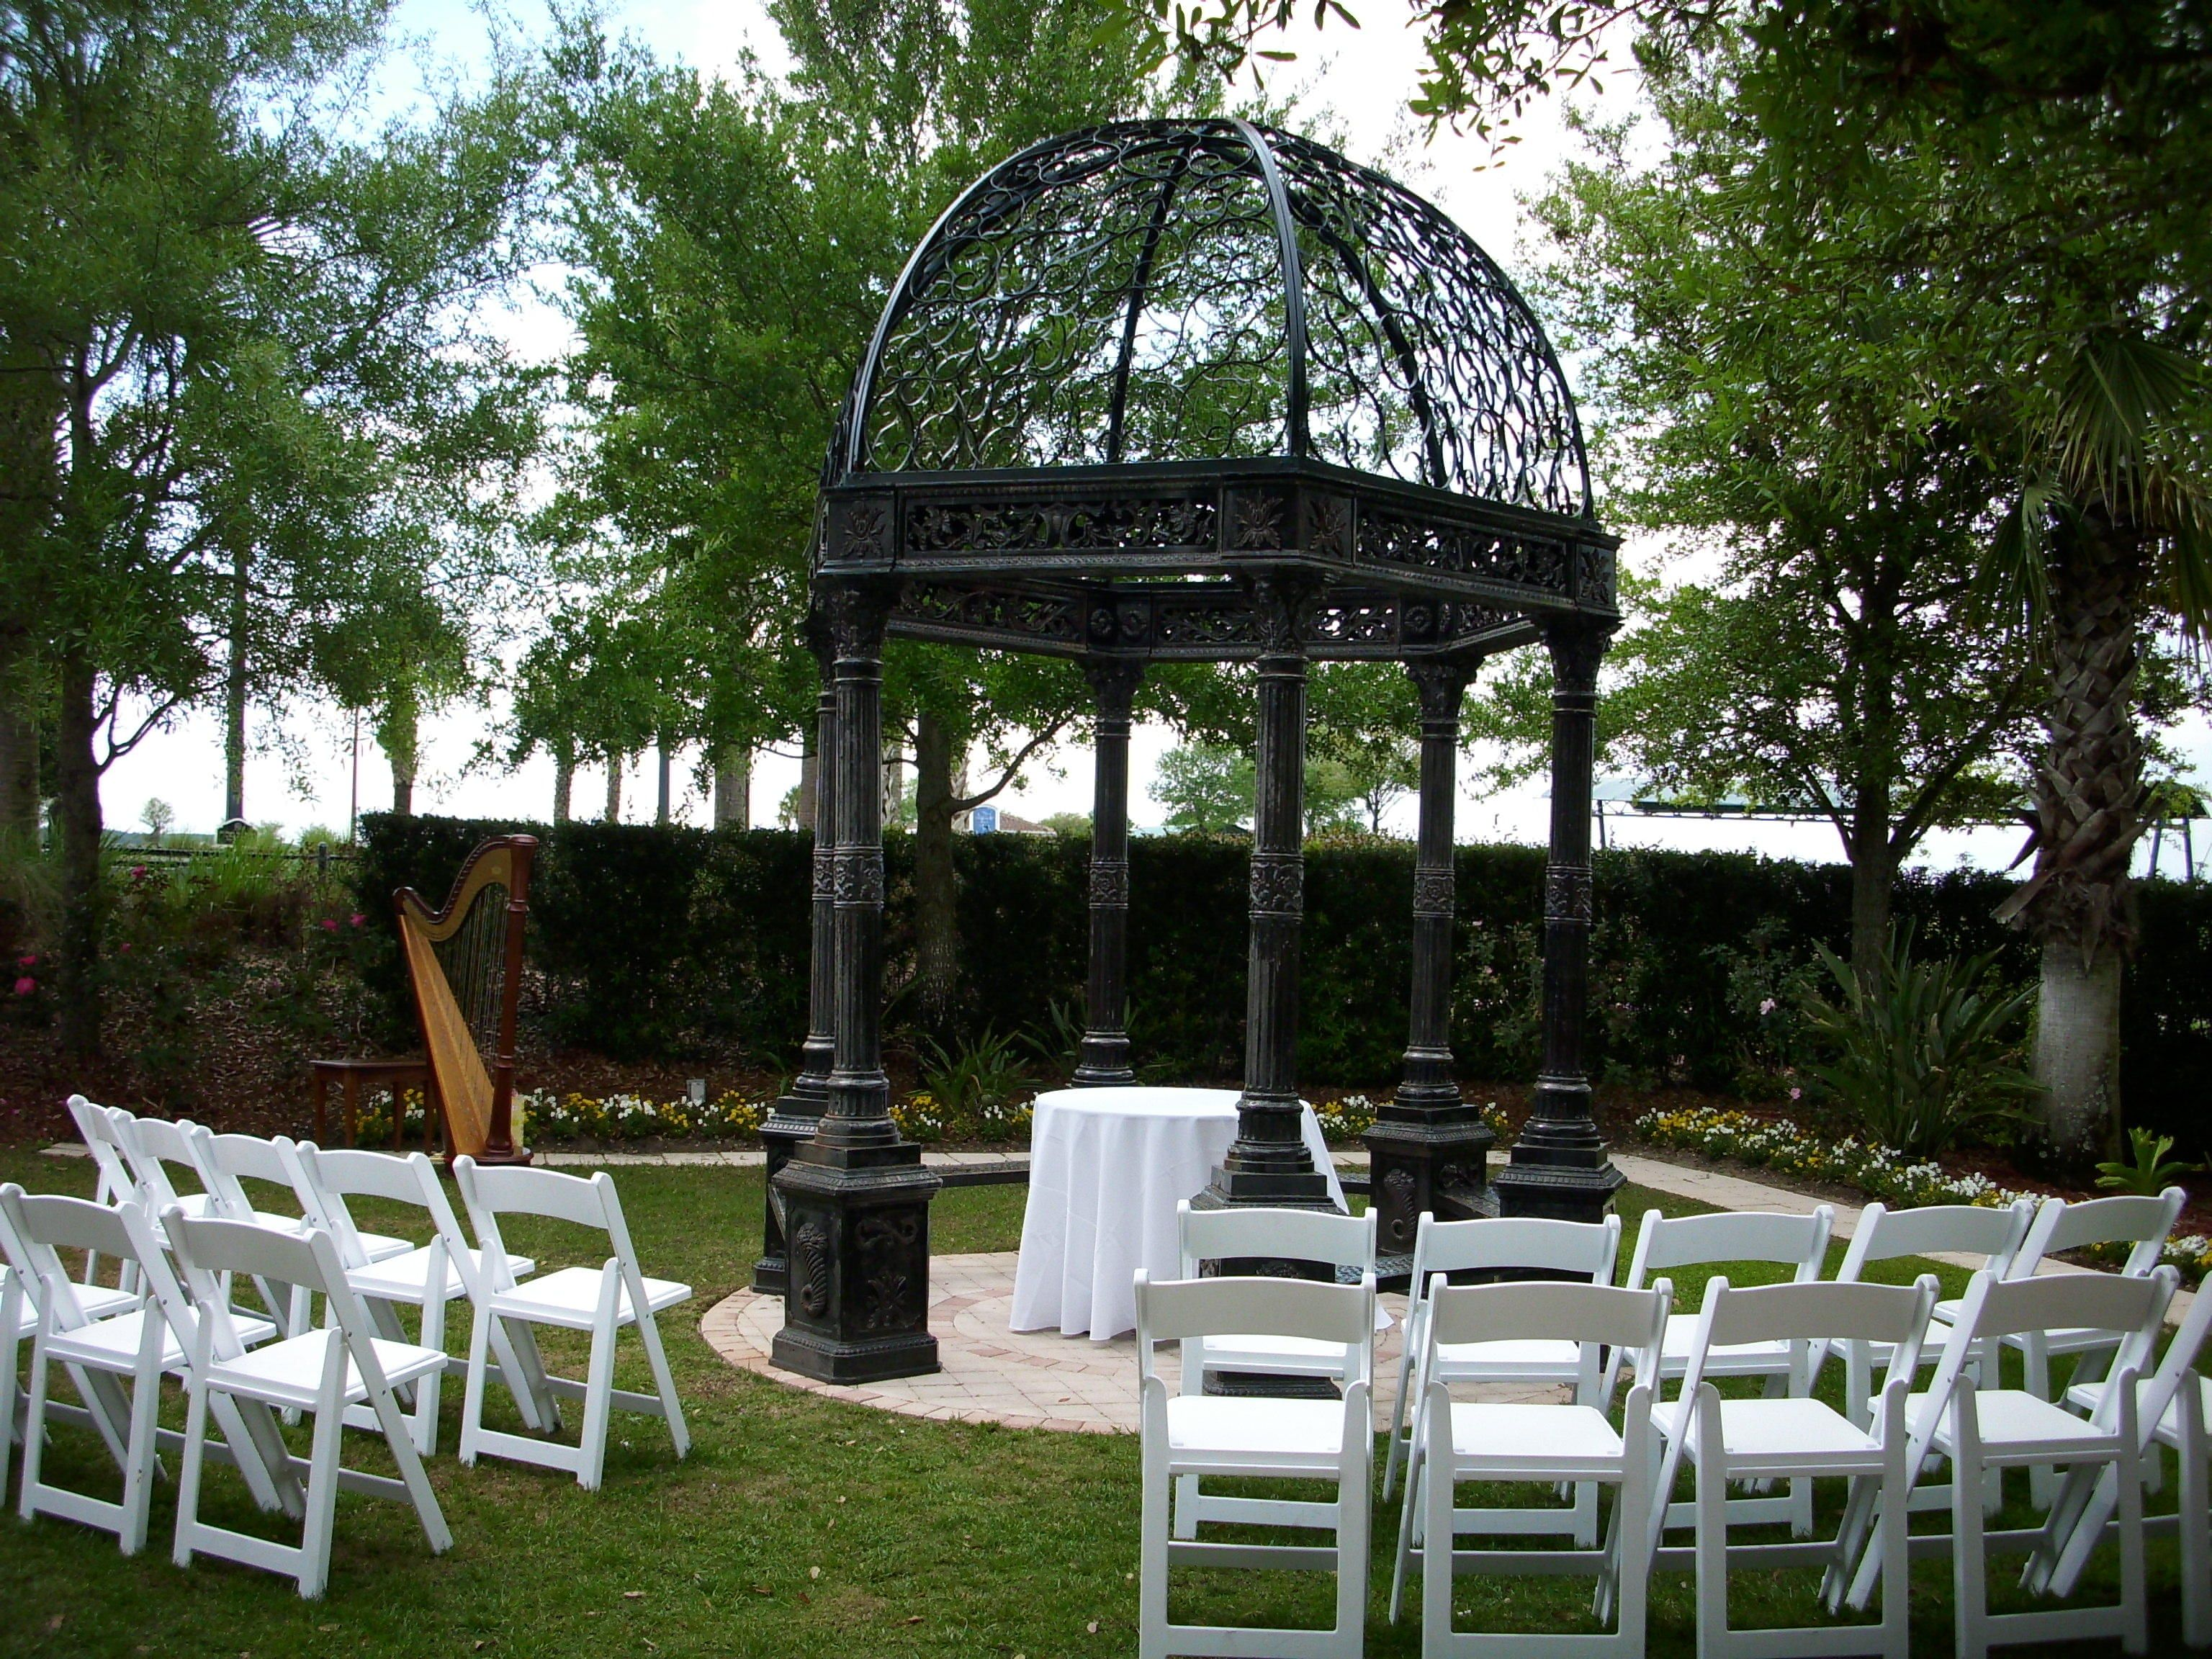 Wedding Ceremony Garden Gazebo At The Omni Orlando Resort ChampionsGate This Is A Beautiful Location For Intimate Or Destination Weddings